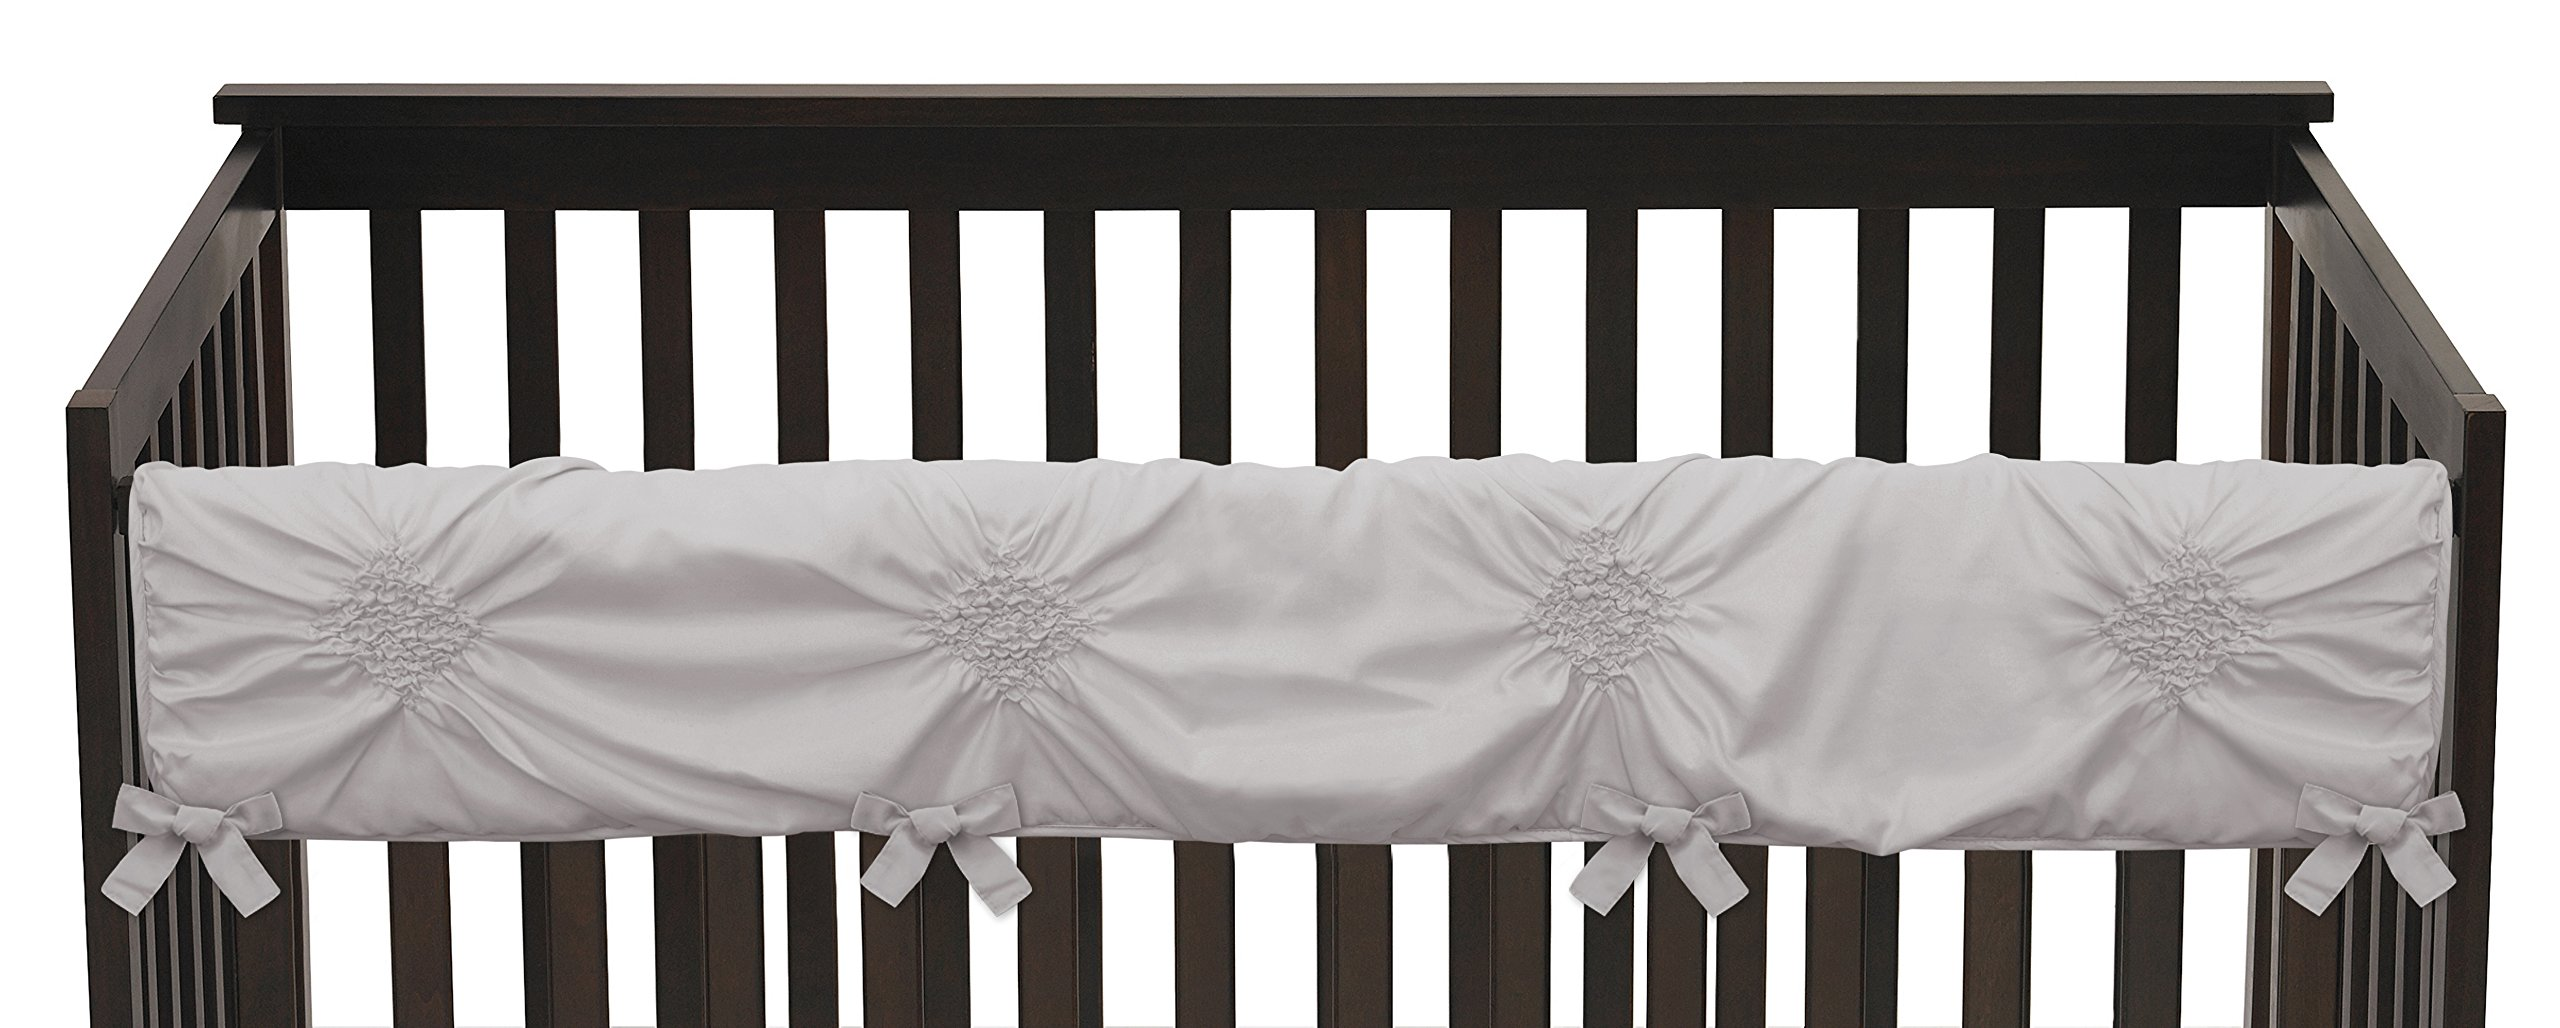 Solid Color Grey Shabby Chic Long Front Crib Rail Guard Baby Teething Cover Protector Wrap for Harper Collection by Sweet Jojo Designs by Sweet Jojo Designs (Image #3)